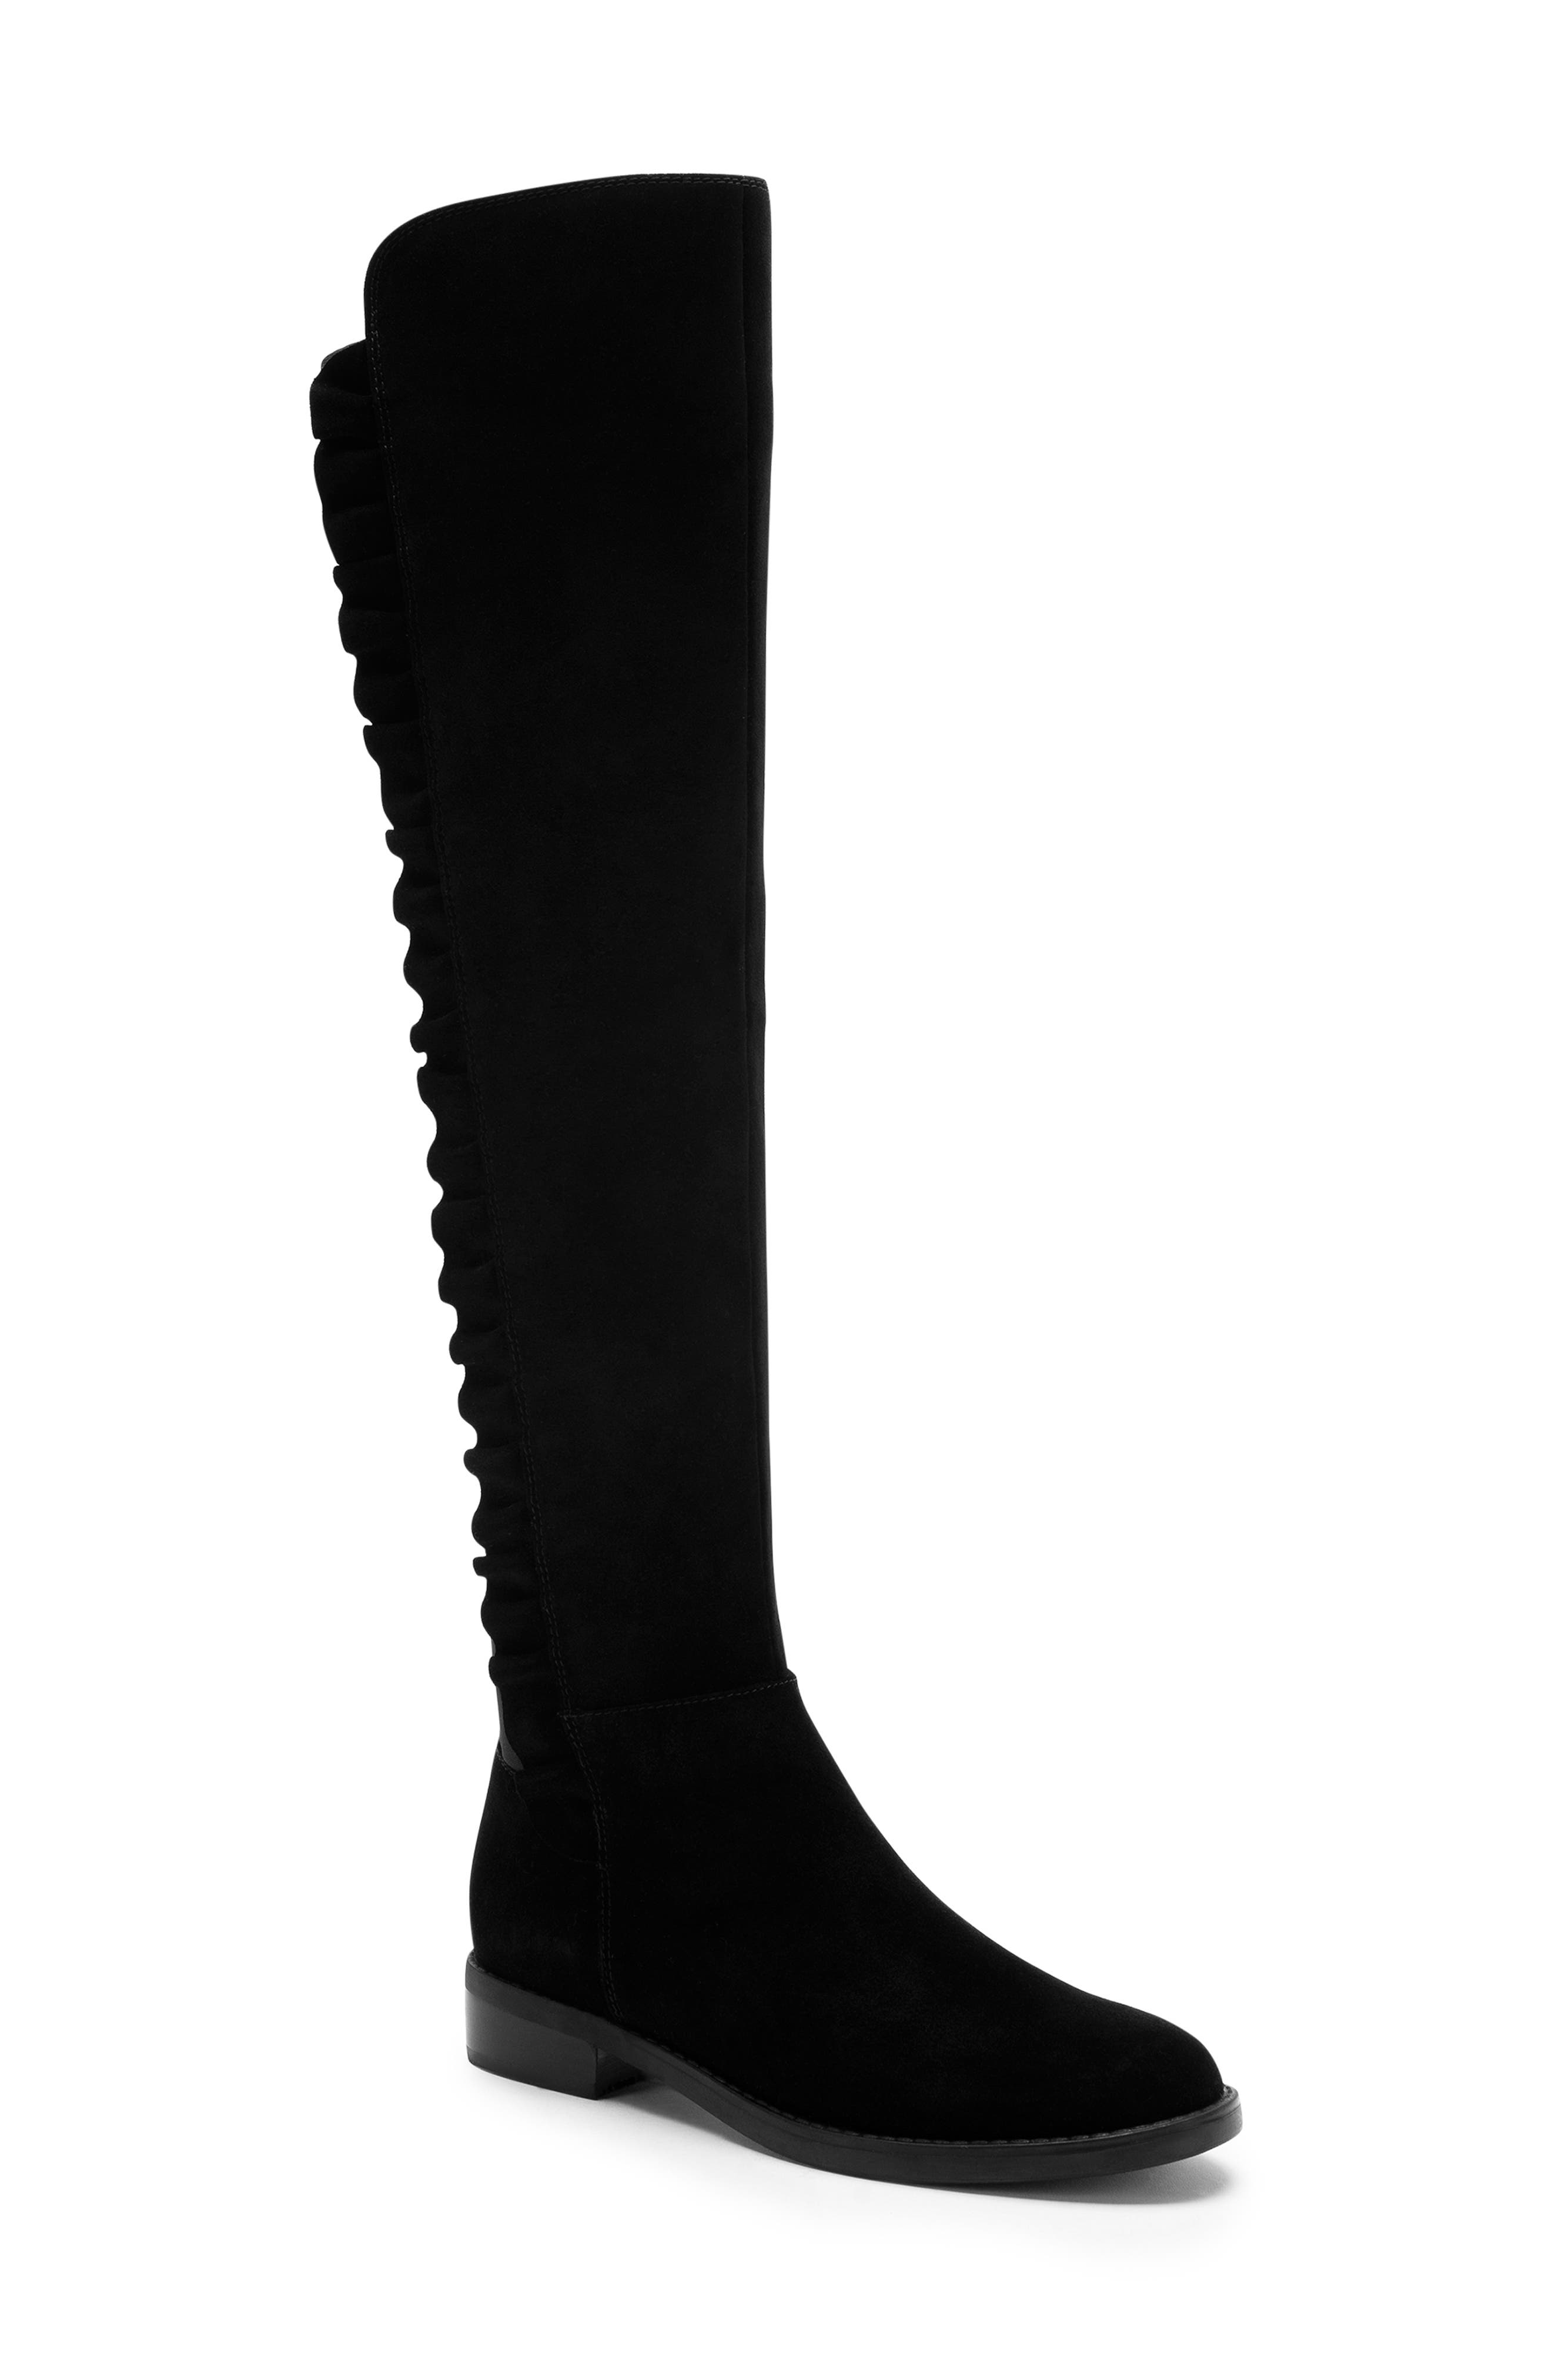 BLONDO Ethos Over the Knee Waterproof Stretch Boot, Main, color, BLACK SUEDE